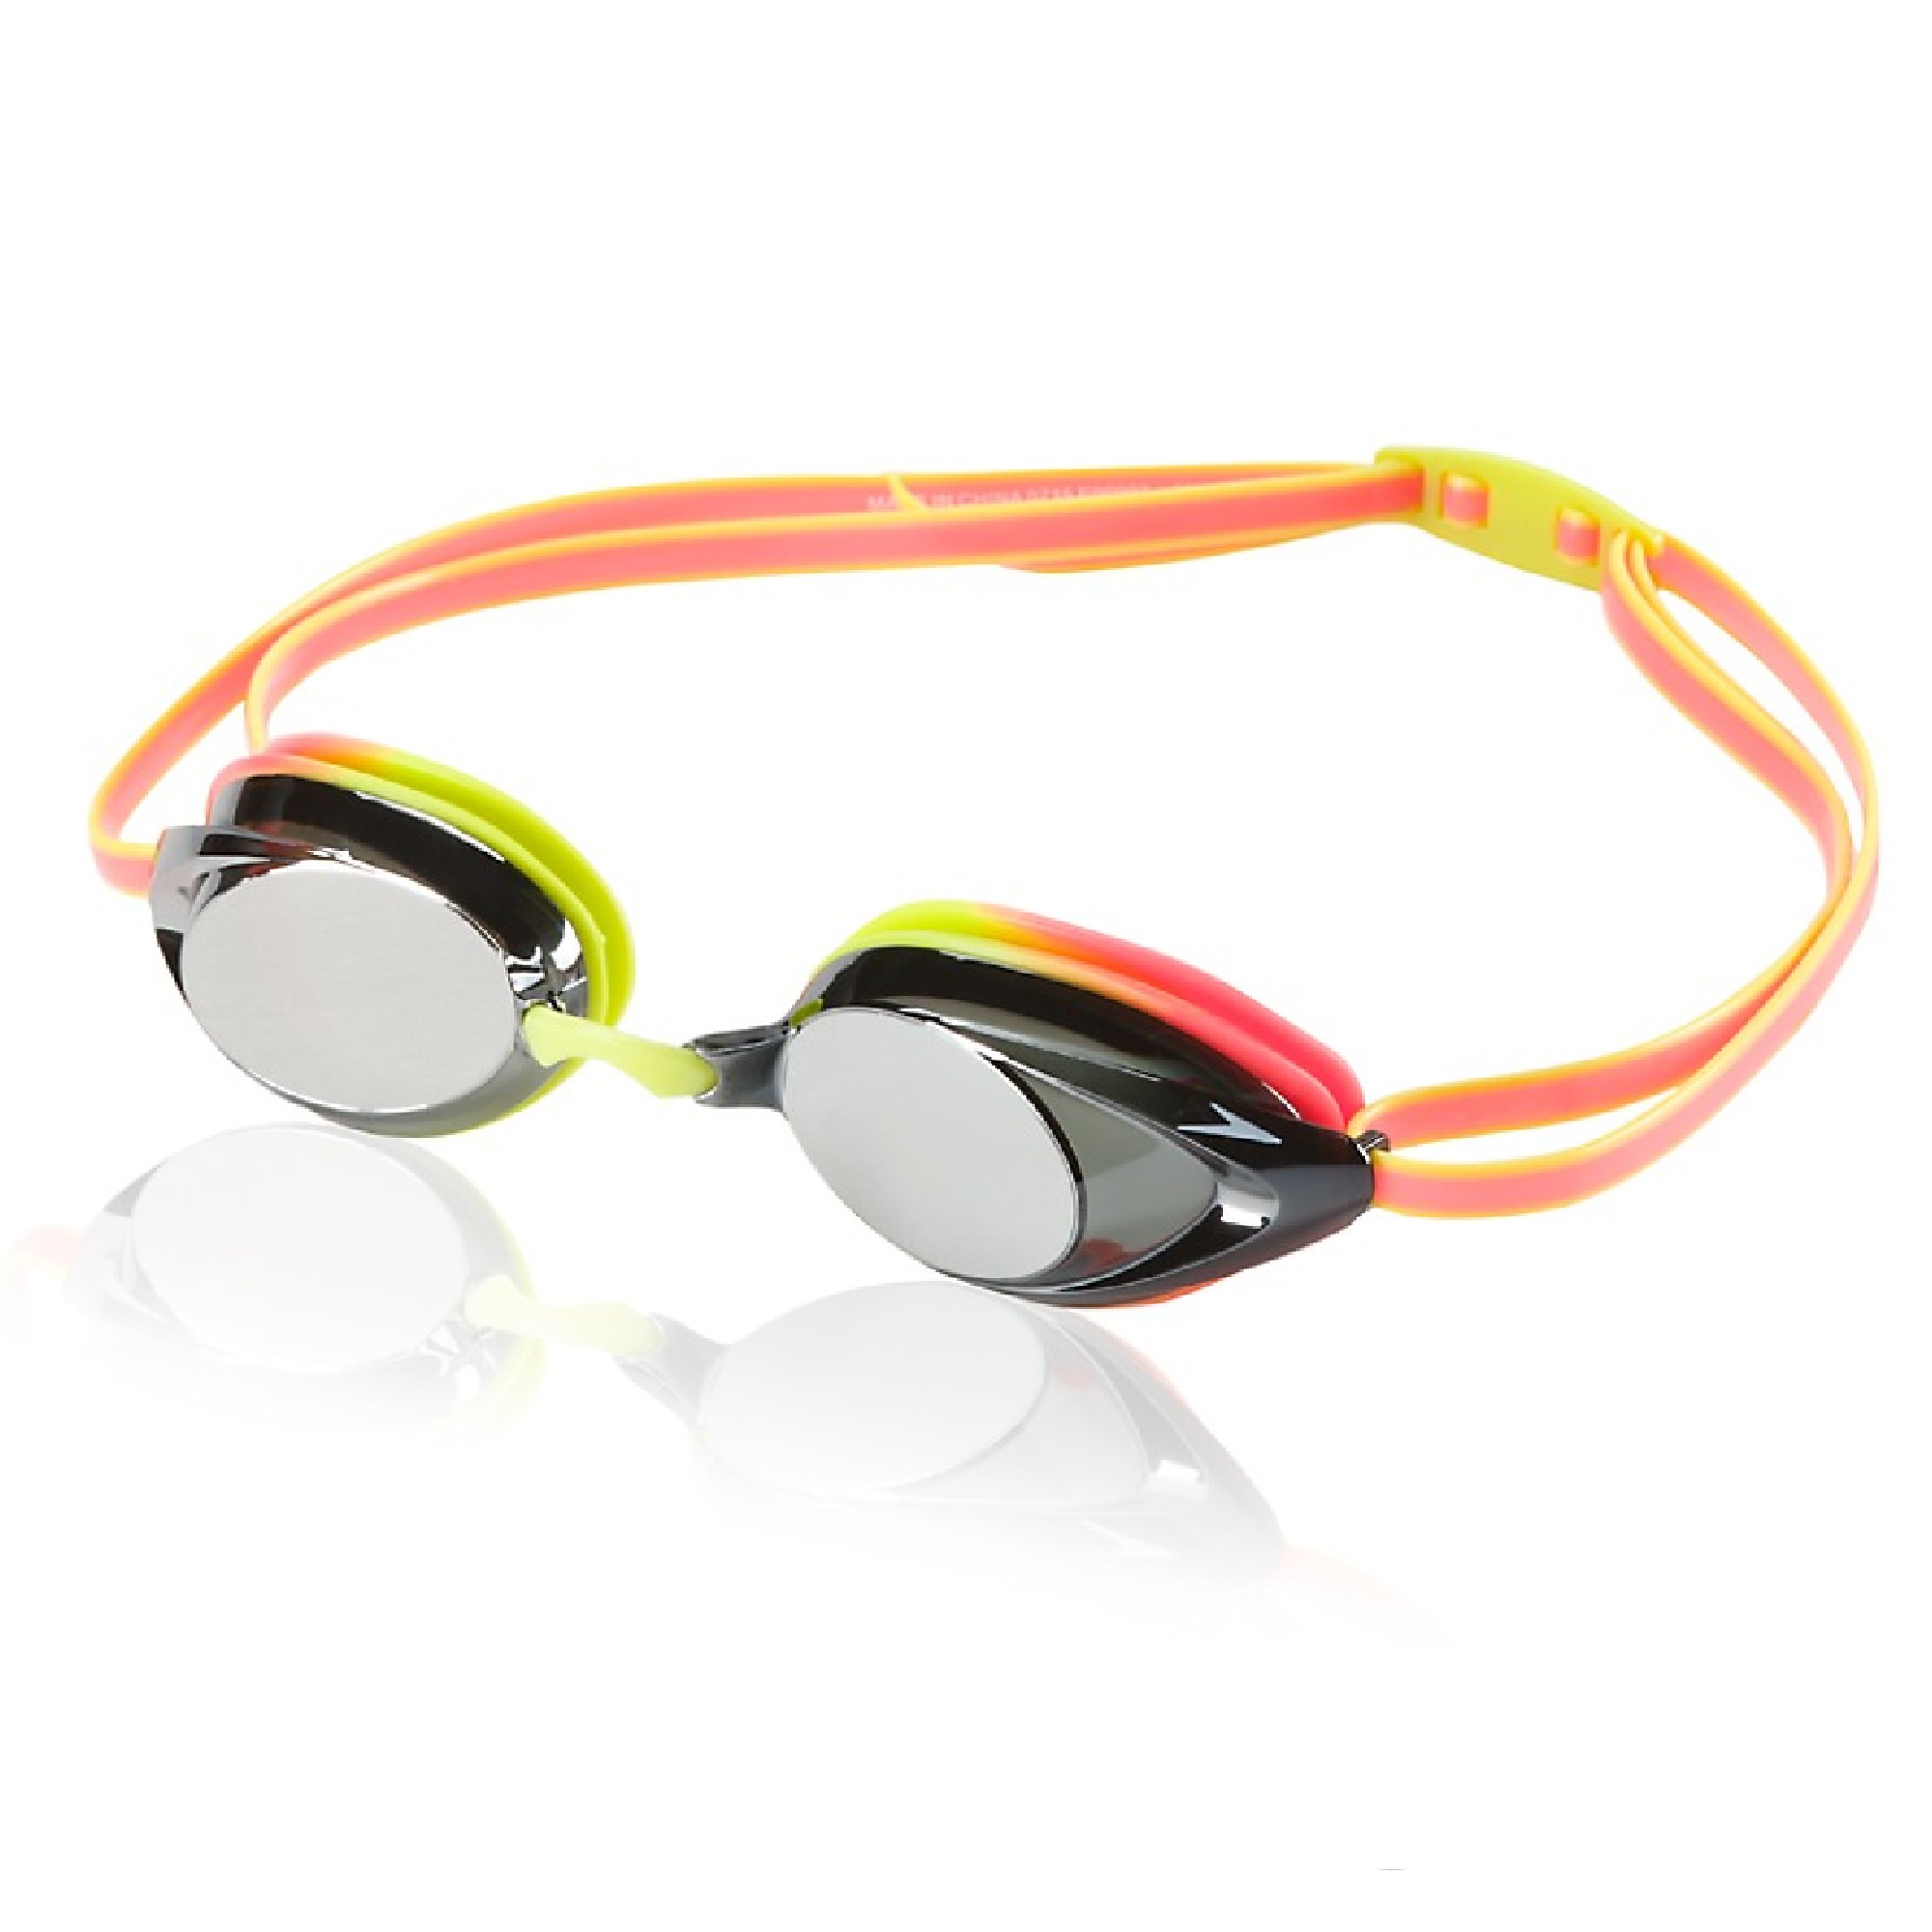 Speedo Vanquisher 2.0 Mirrored Anti-Fog Swim Swimming Pool Goggle - Citrus Green